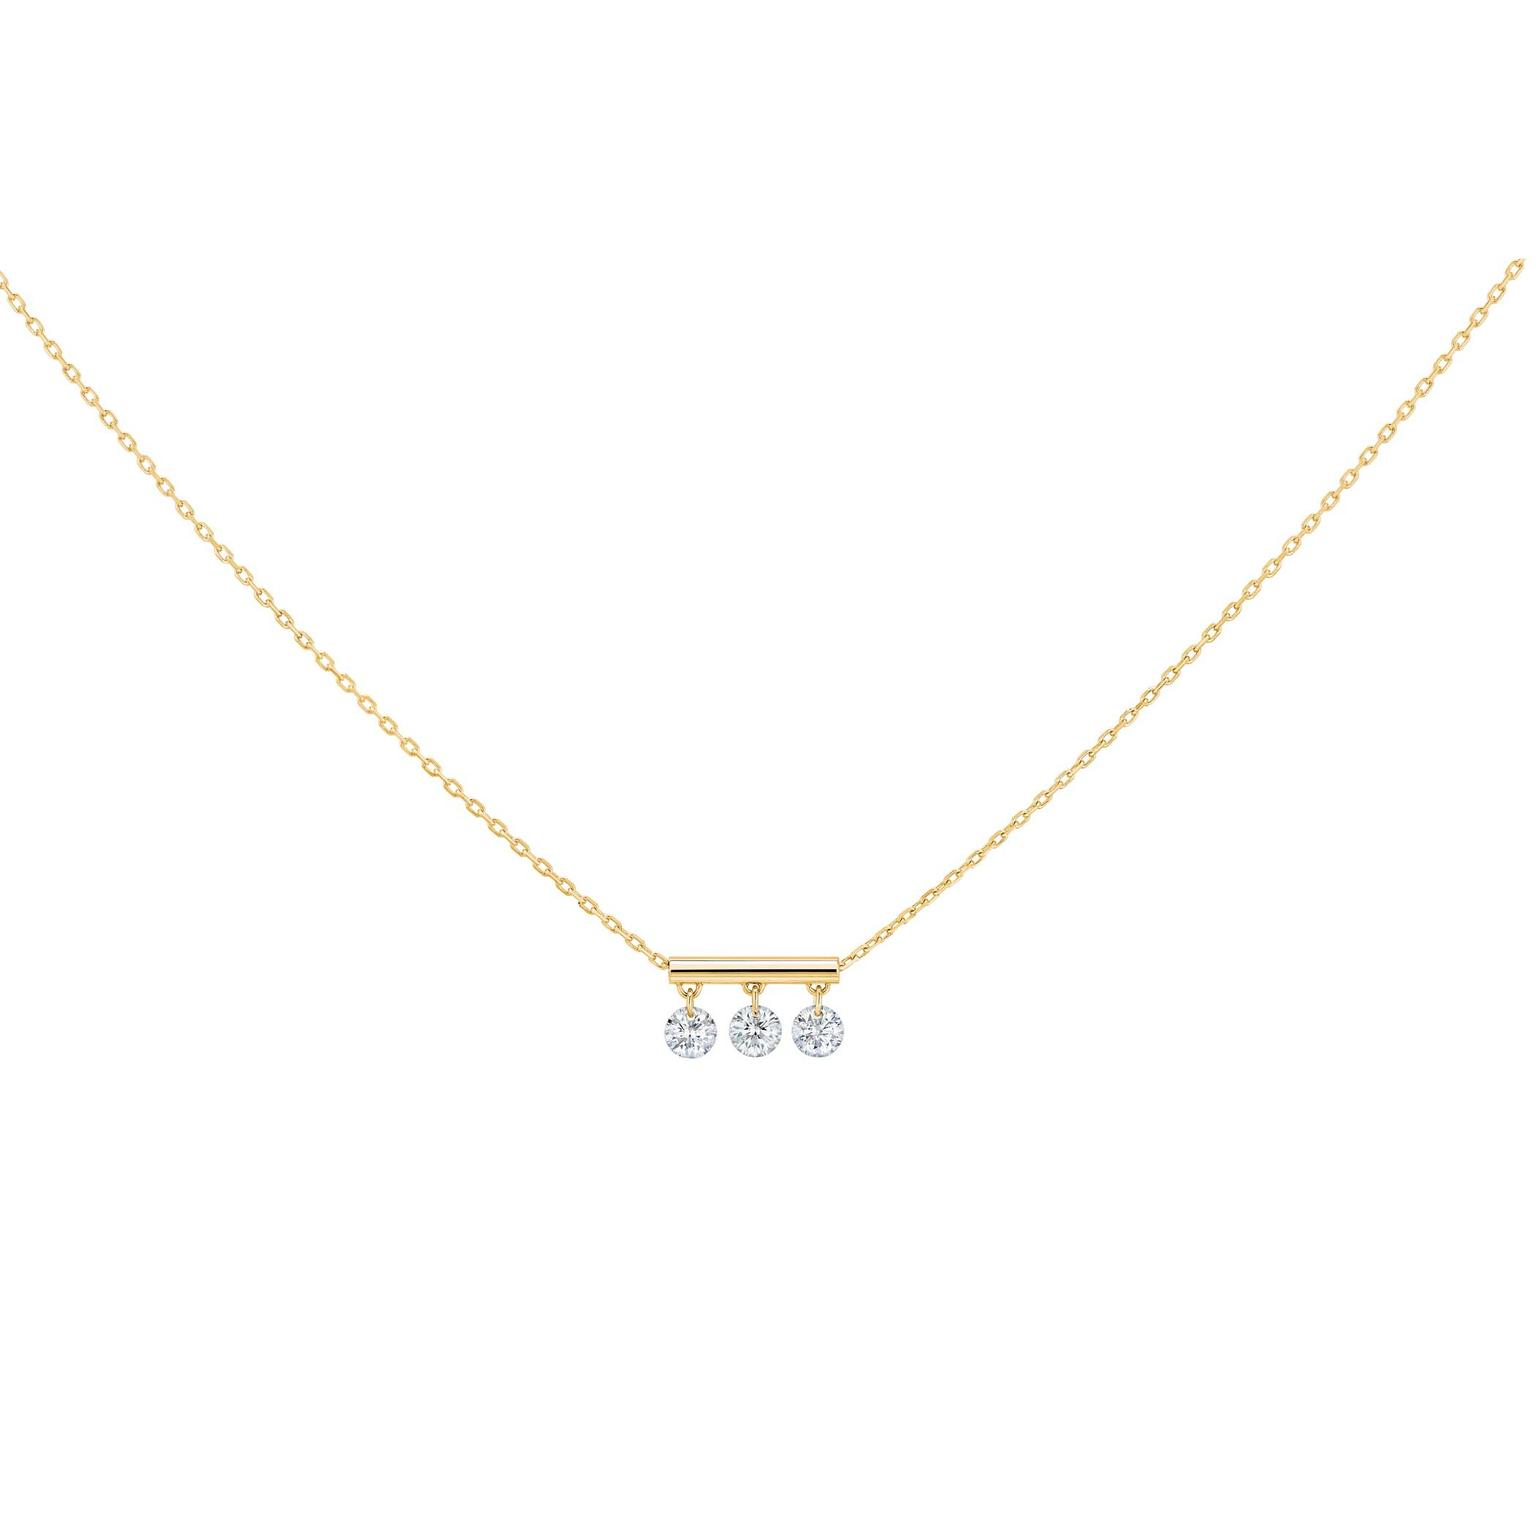 La Brune & La Blonde Pampilles necklace with brilliant-cut diamonds on a gold chain